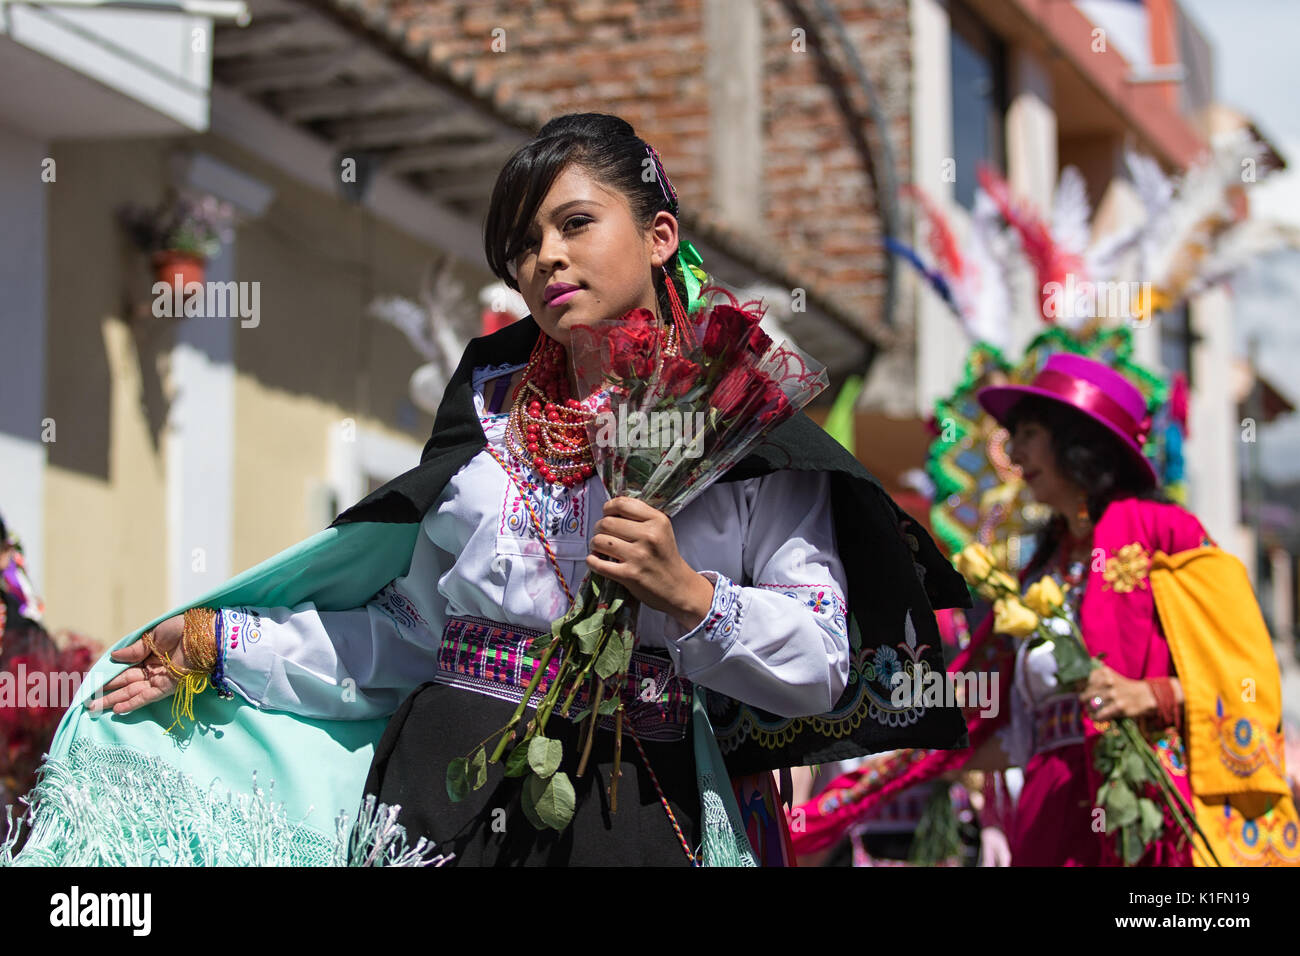 June 17, 2017 Pujili, Ecuador: woman wearing a colorful costume marching at the annual Corpus Christi parade holding flowers - Stock Image